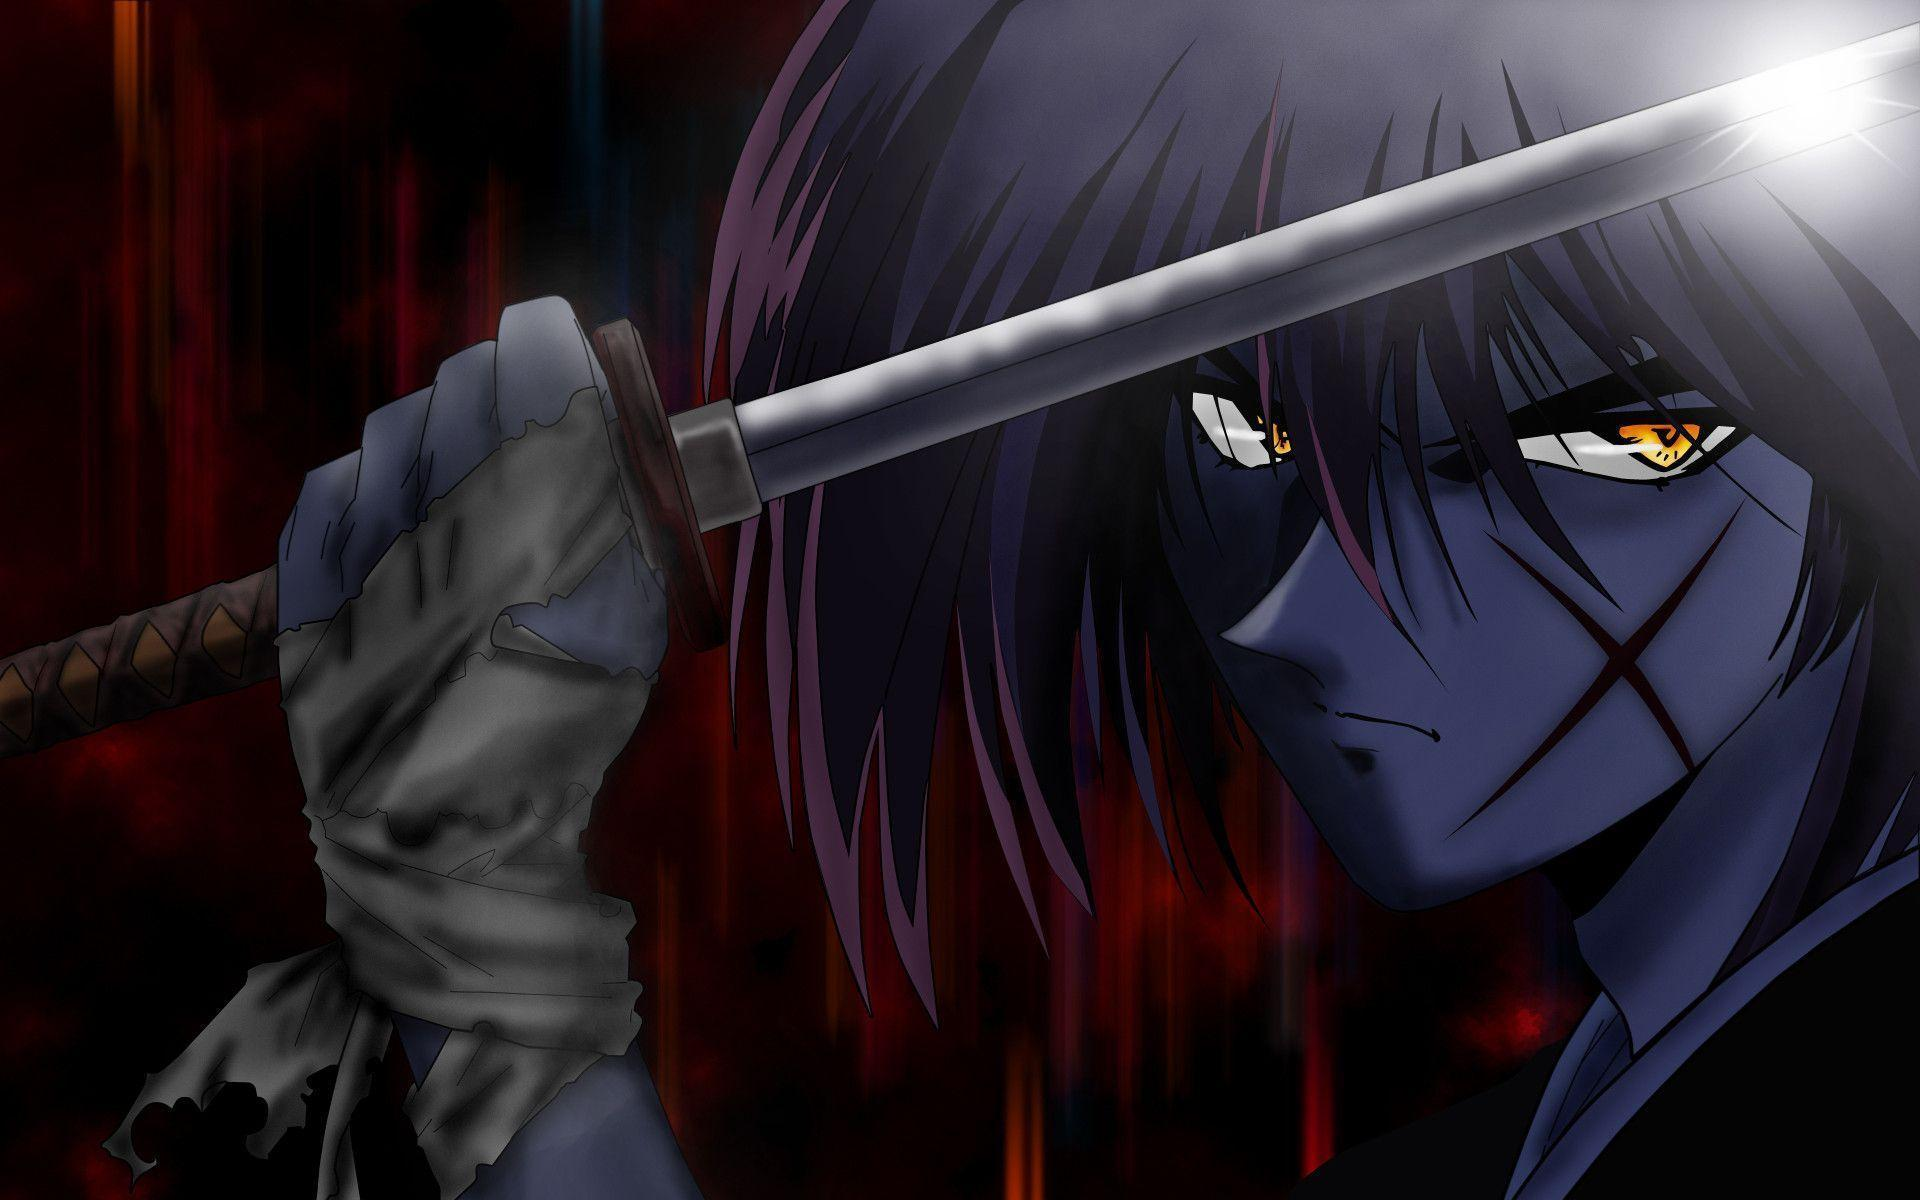 kenshin himura wallpaper - photo #8